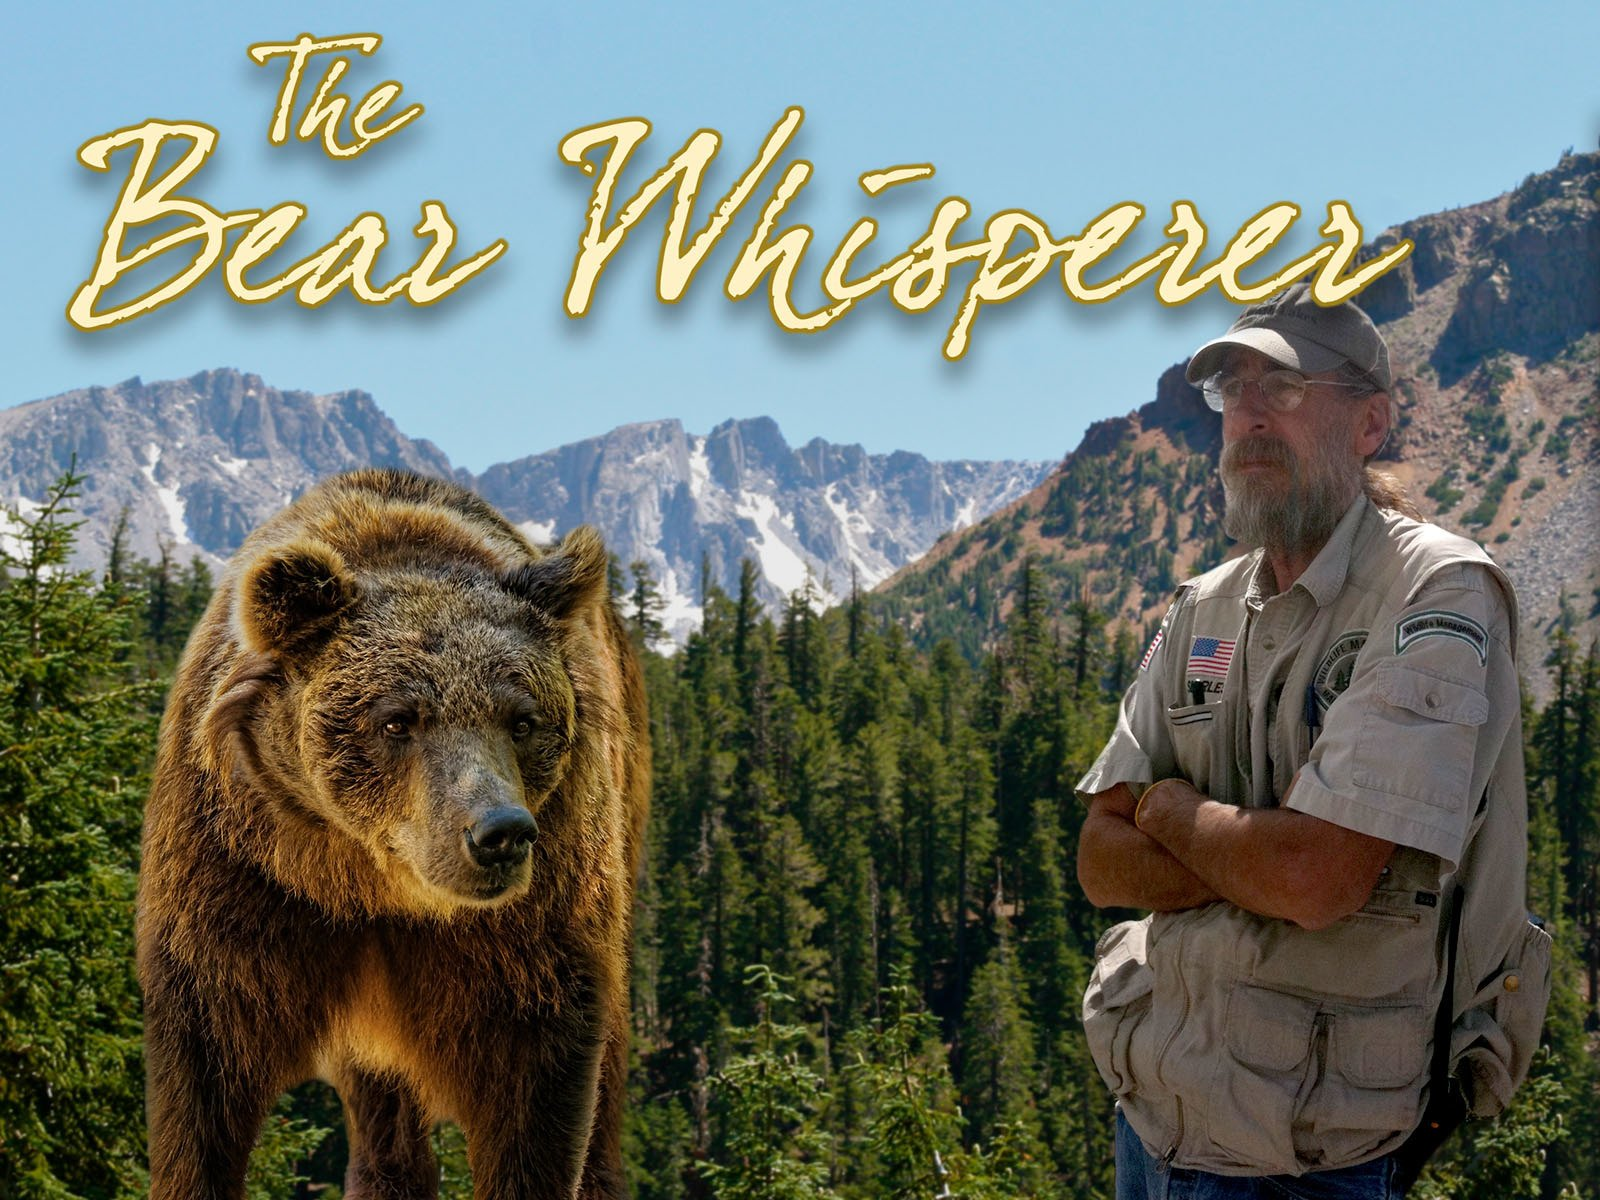 The Bear Whisperer - Season 1